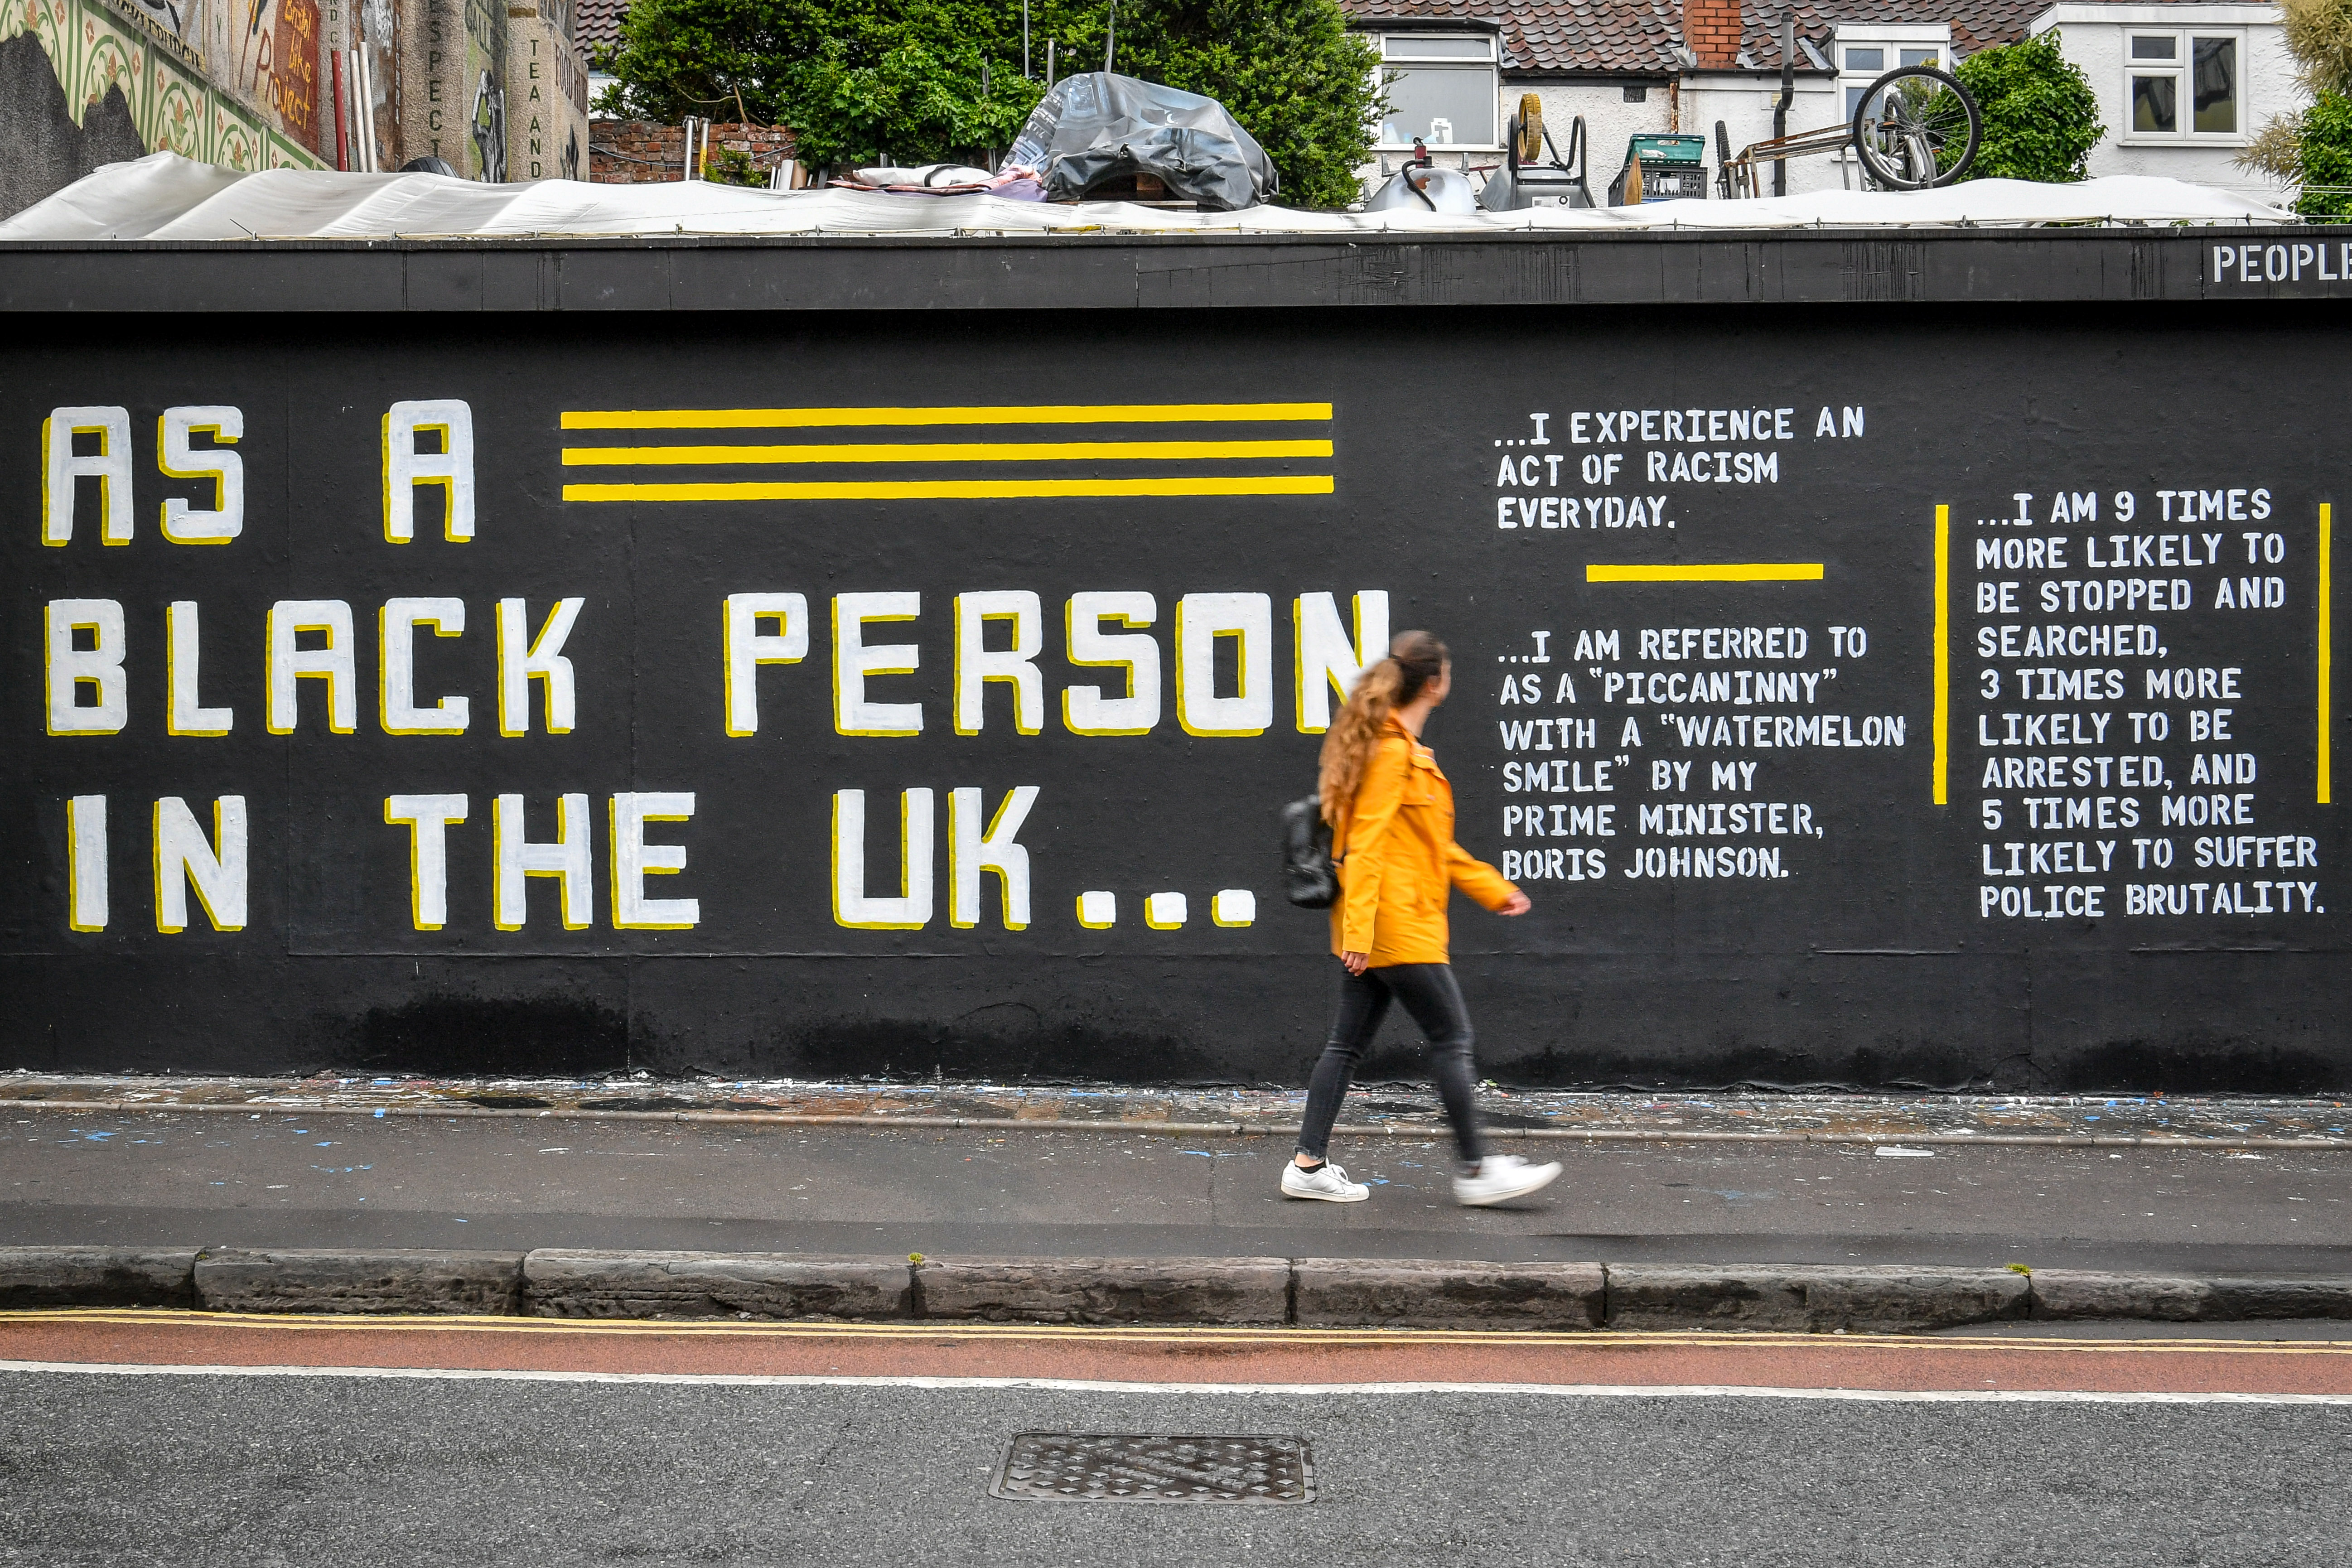 A woman looks at a graffiti art piece on Black Lives Matter on a wall in the Stokes Croft area of Bristol following a raft of Black Lives Matter protests took place across the UK over the weekend. The protests were sparked by the death of George Floyd, who was killed on May 25 while in police custody in the US city of Minneapolis.